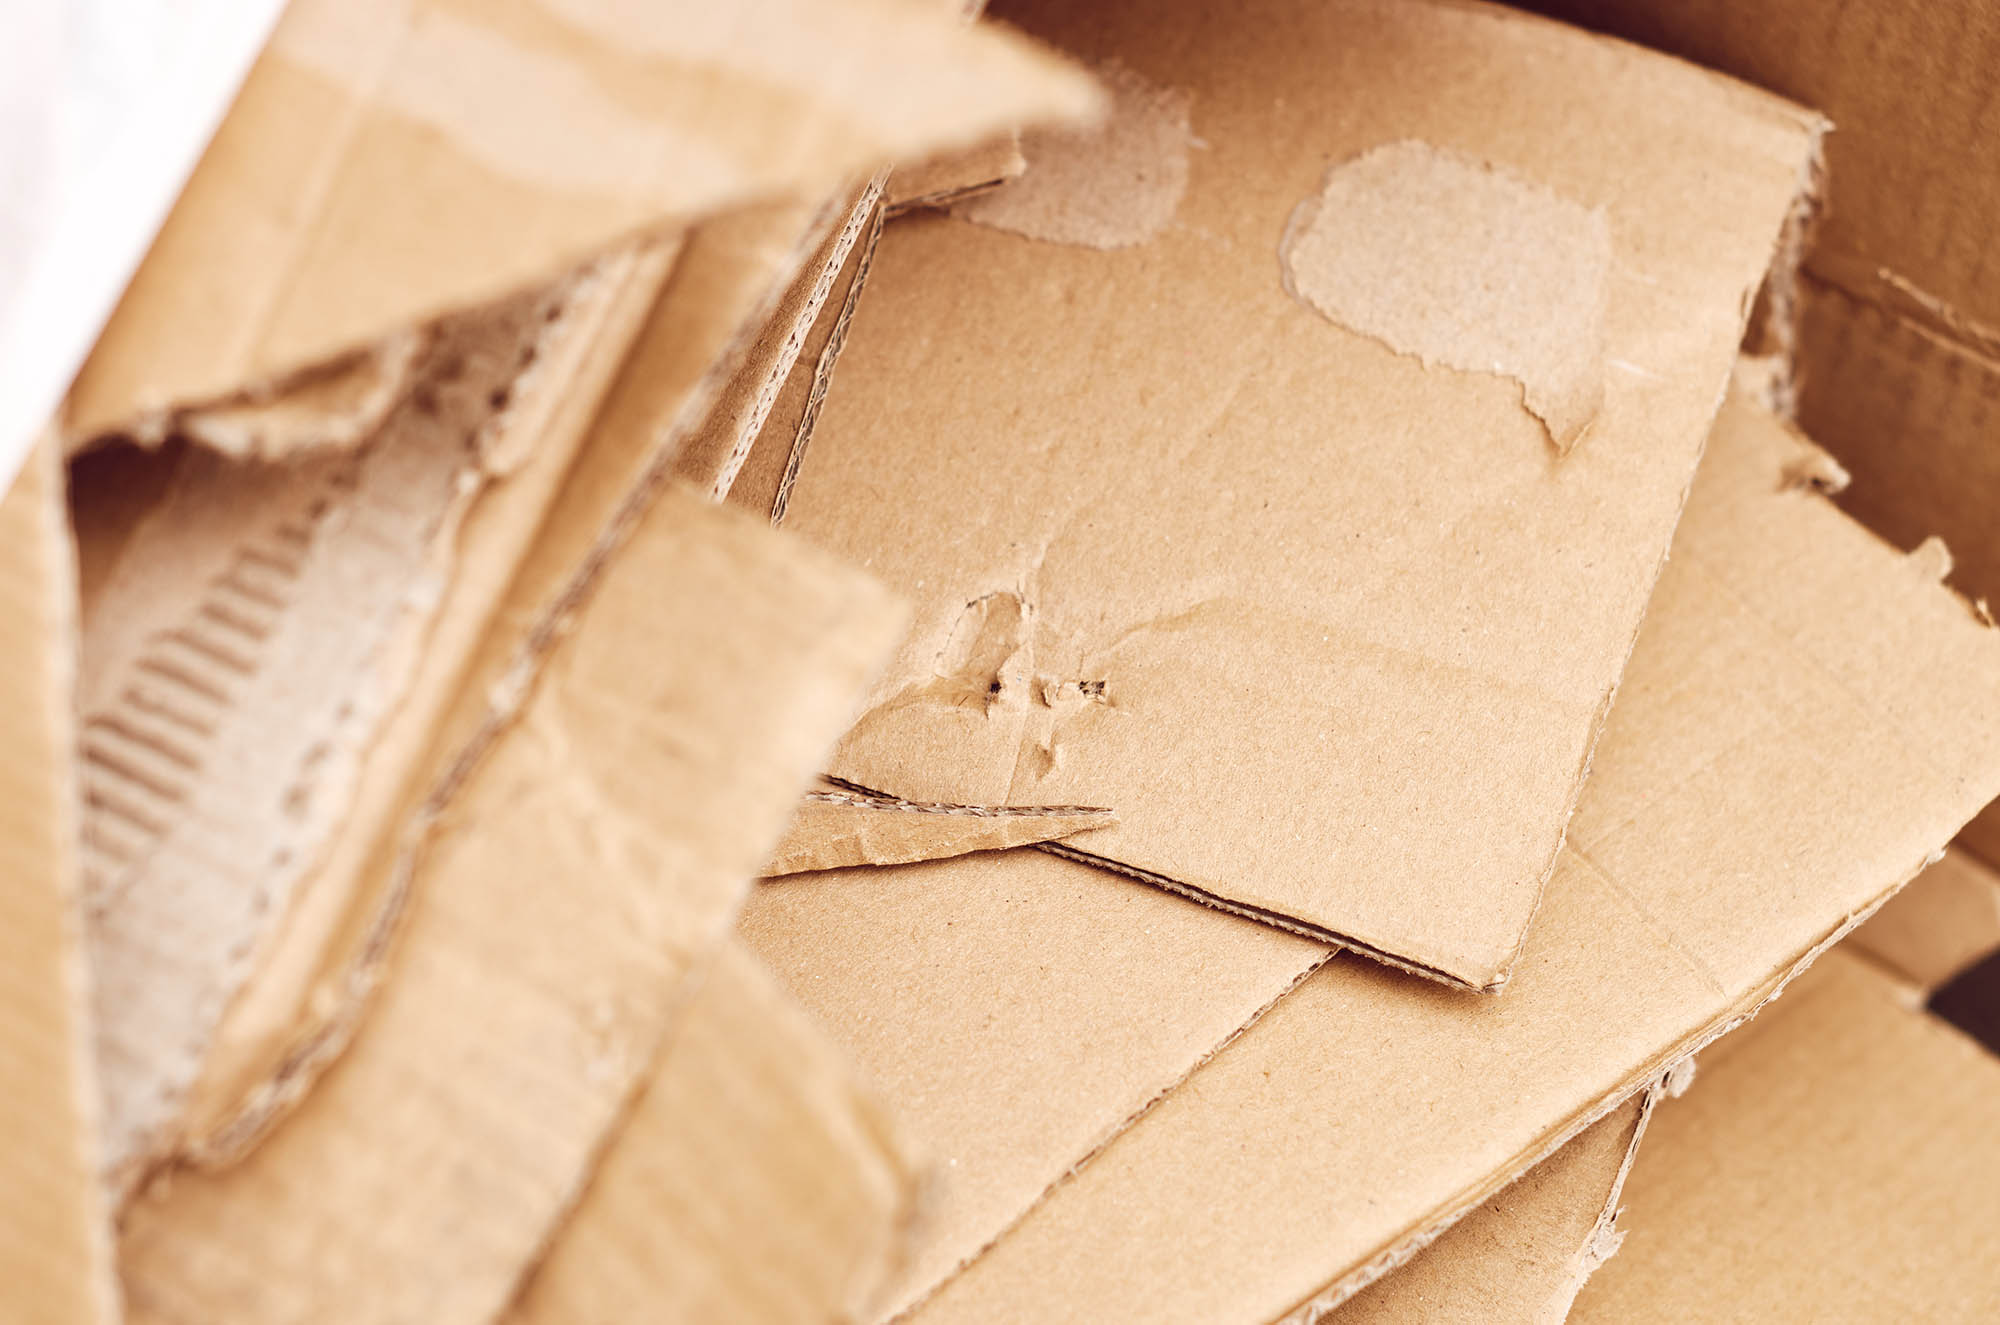 scrap of containerboard